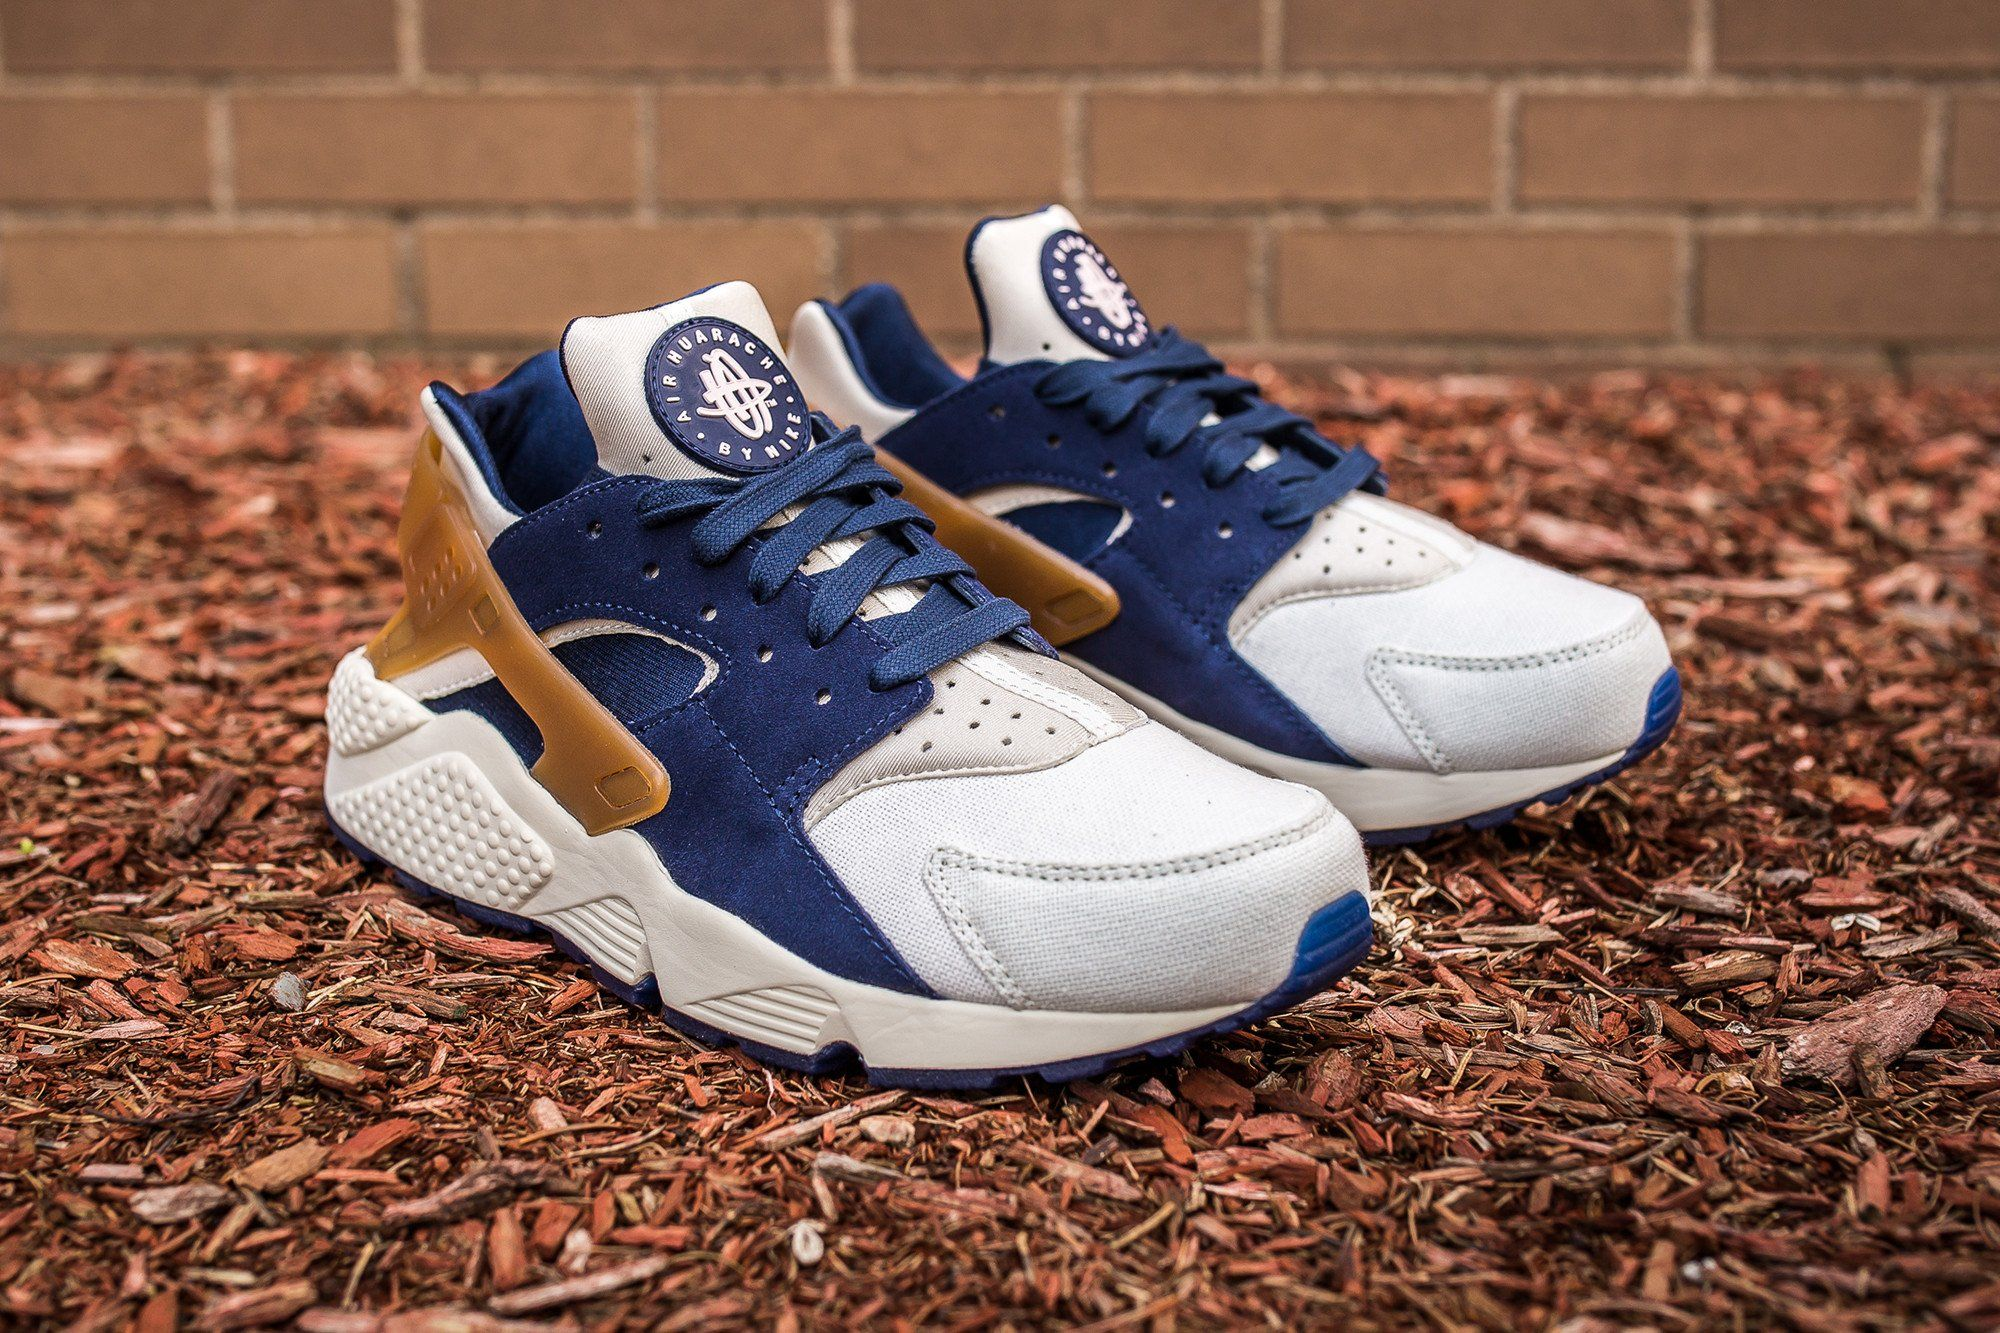 e4afb316e635ef Best Gym Shoes · Air Maxes · Nike Shoe · Beer · NIKE AIR HUARACHE-MIDNIGHT  NAVY-ALE BROWN-SAIL-1